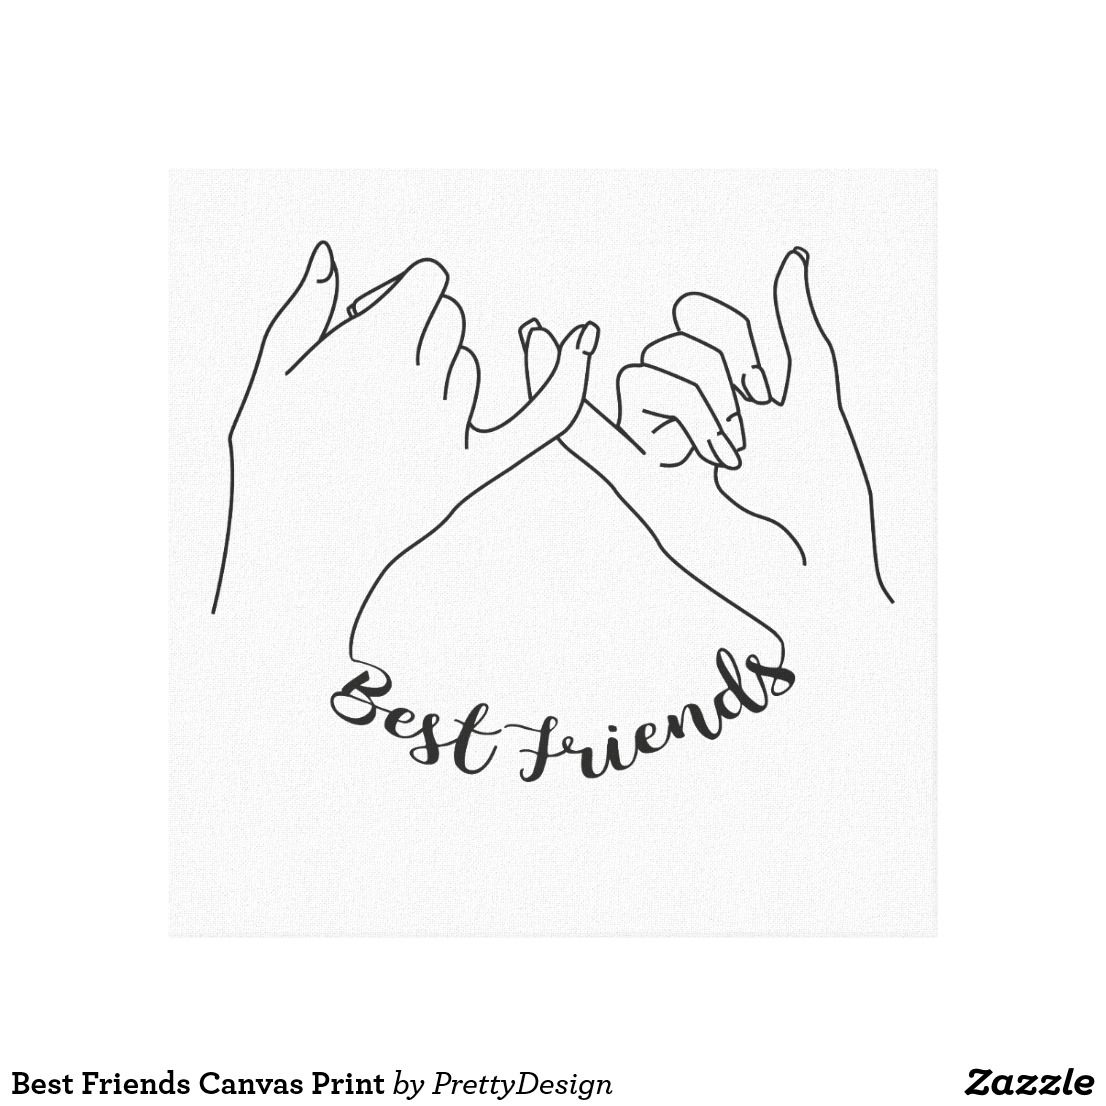 3c62d5f4cd3d34d4100372a857dbcc79 » Easy Drawings For Your Best Friend